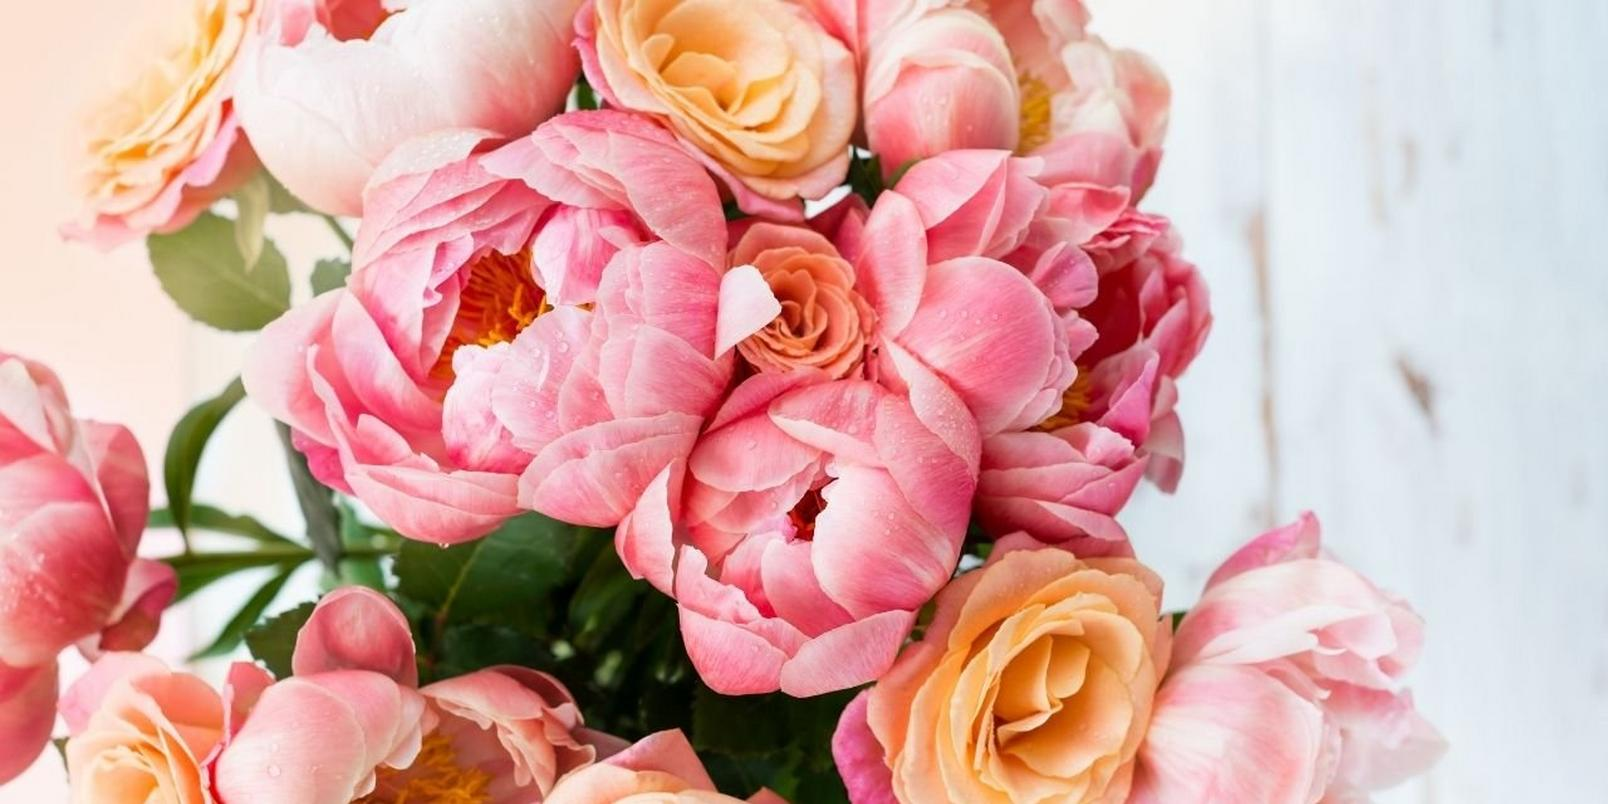 peonies-facts-that-may-surprise-you-3